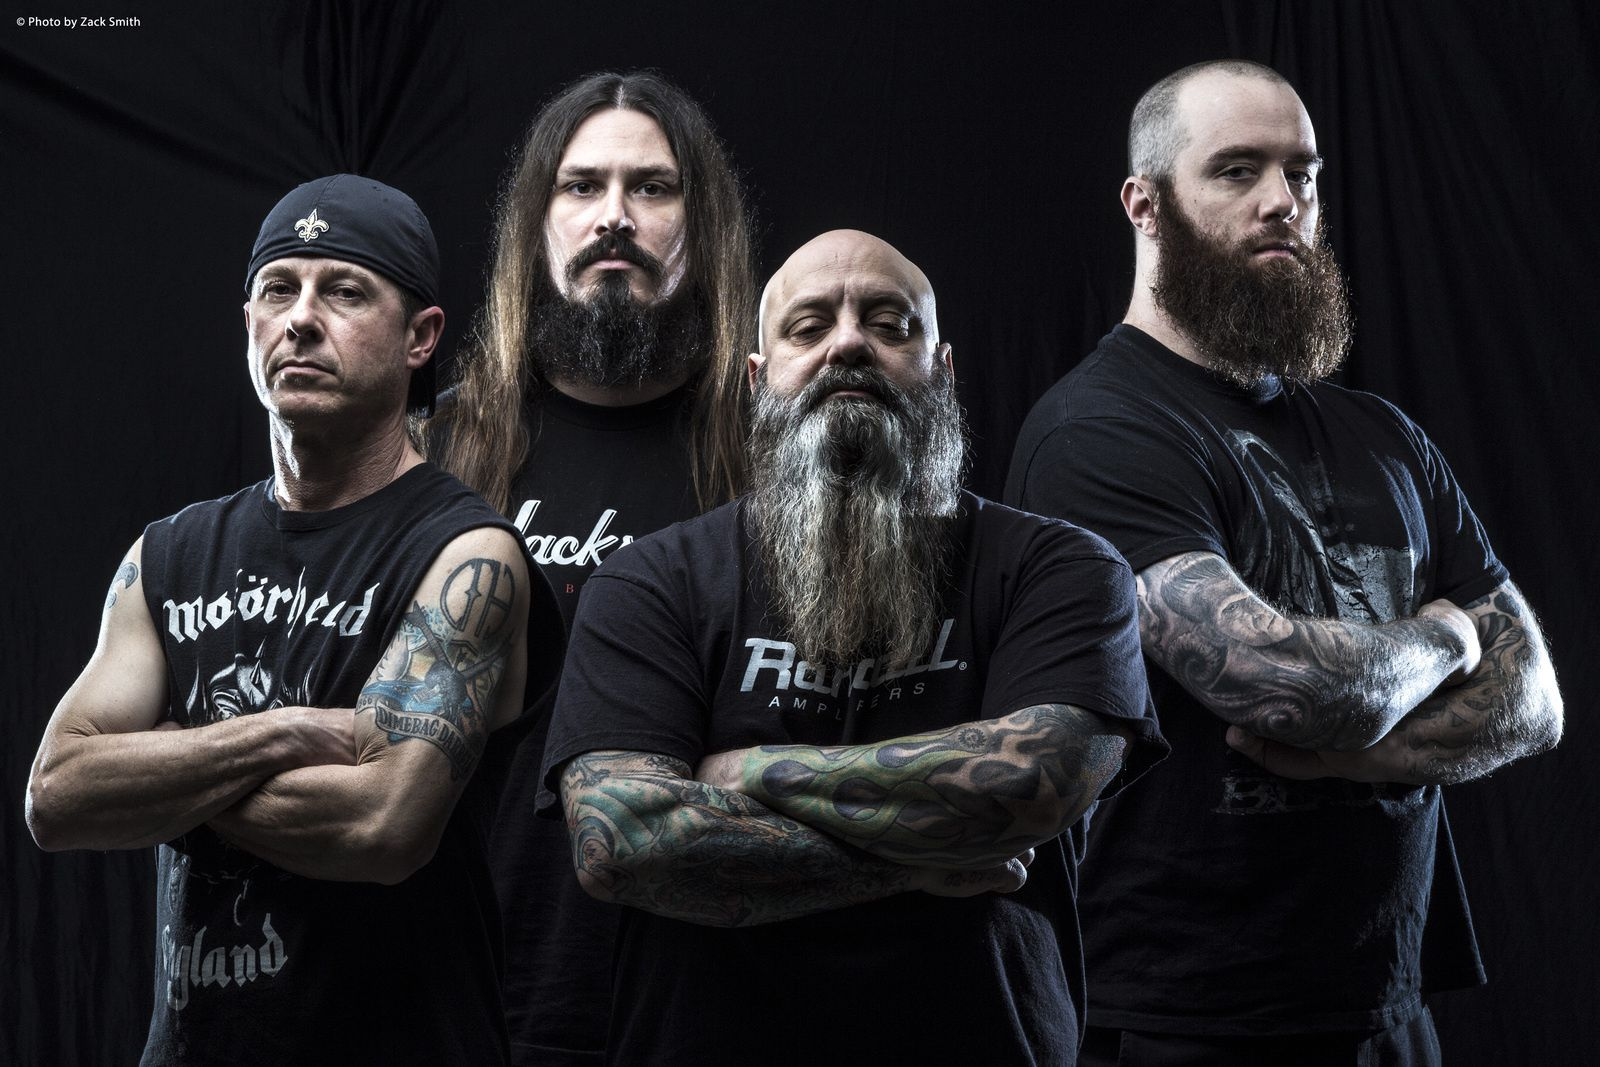 CROWBAR on tour in February/March